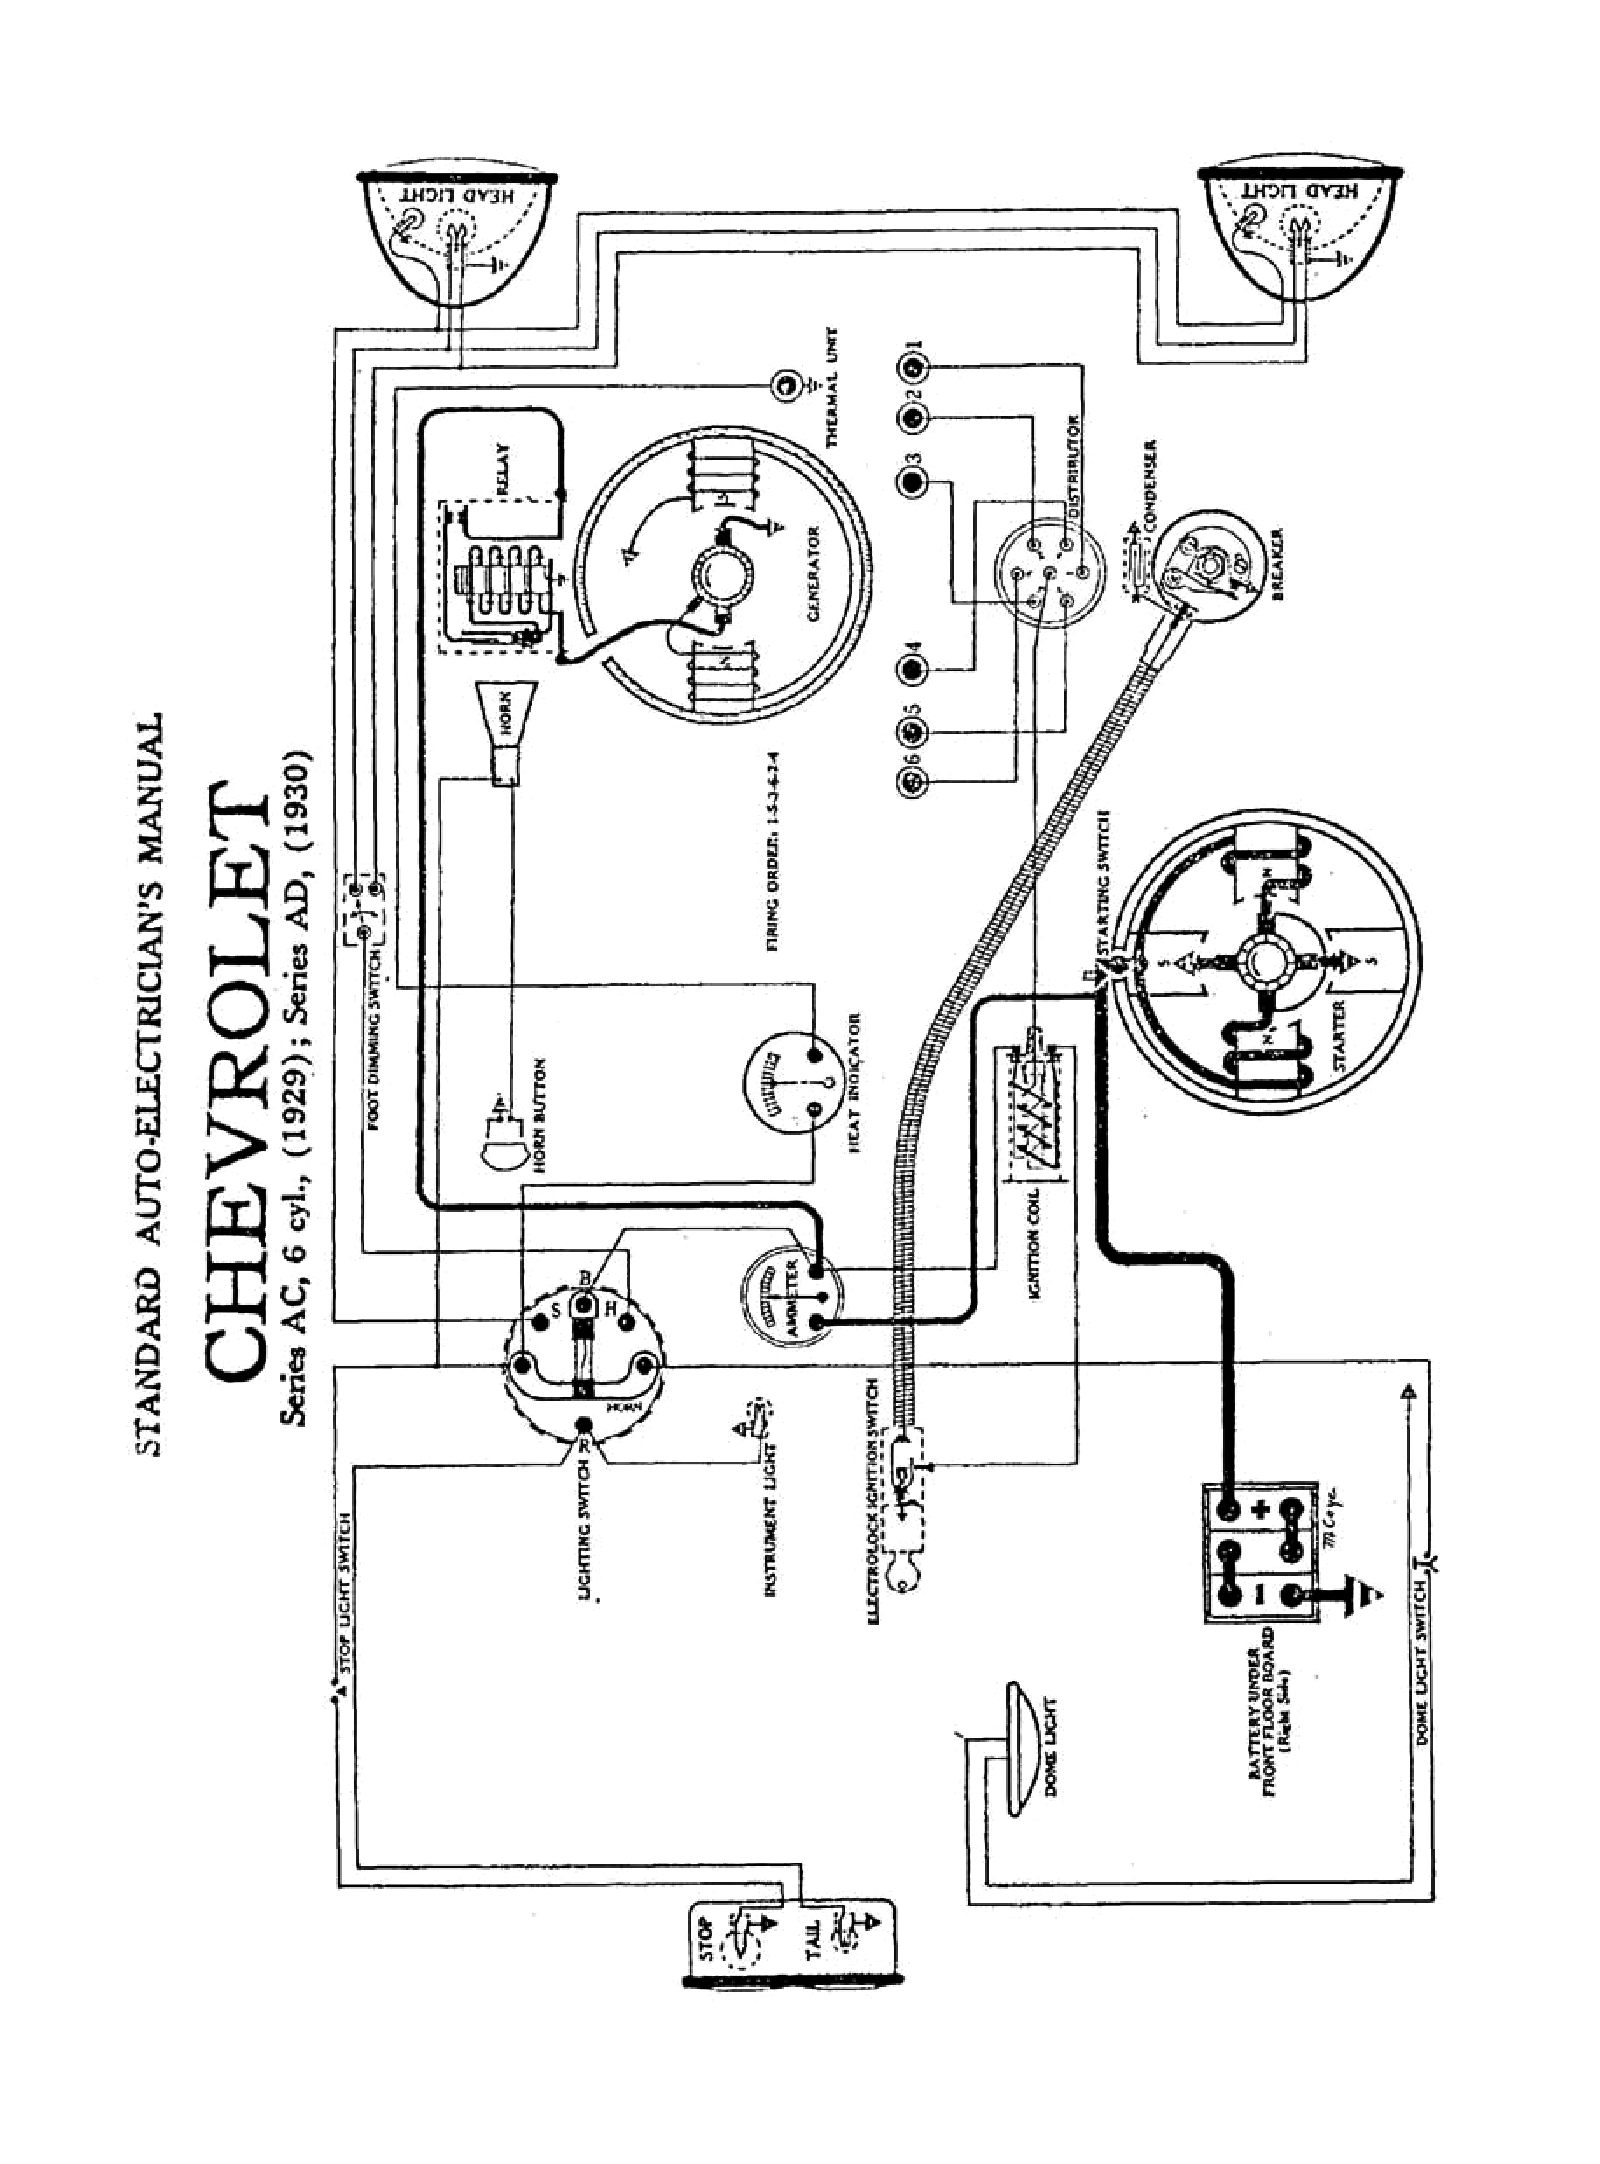 Chevy Wiring diagrams on 1940 chevy wiring diagram, 1949 chevy truck horn, 1950 chevy wiring diagram, 1949 chevy truck engine, 1949 chevy truck clutch, 1949 chevy truck coil, 1949 packard wiring diagram, chevy volt wiring diagram, 1949 chevy truck accessories, 1948 ford wiring diagram, 1949 cadillac wiring diagram, 1949 chevy truck forum, 54 chevy wiring diagram, 1949 chevy truck steering, 1949 chevy truck voltage regulator, 1949 plymouth wiring diagram, 1953 chevy wiring diagram, 1940 ford pickup wiring diagram, 1949 ford wiring diagram, chevy radio wiring diagram,